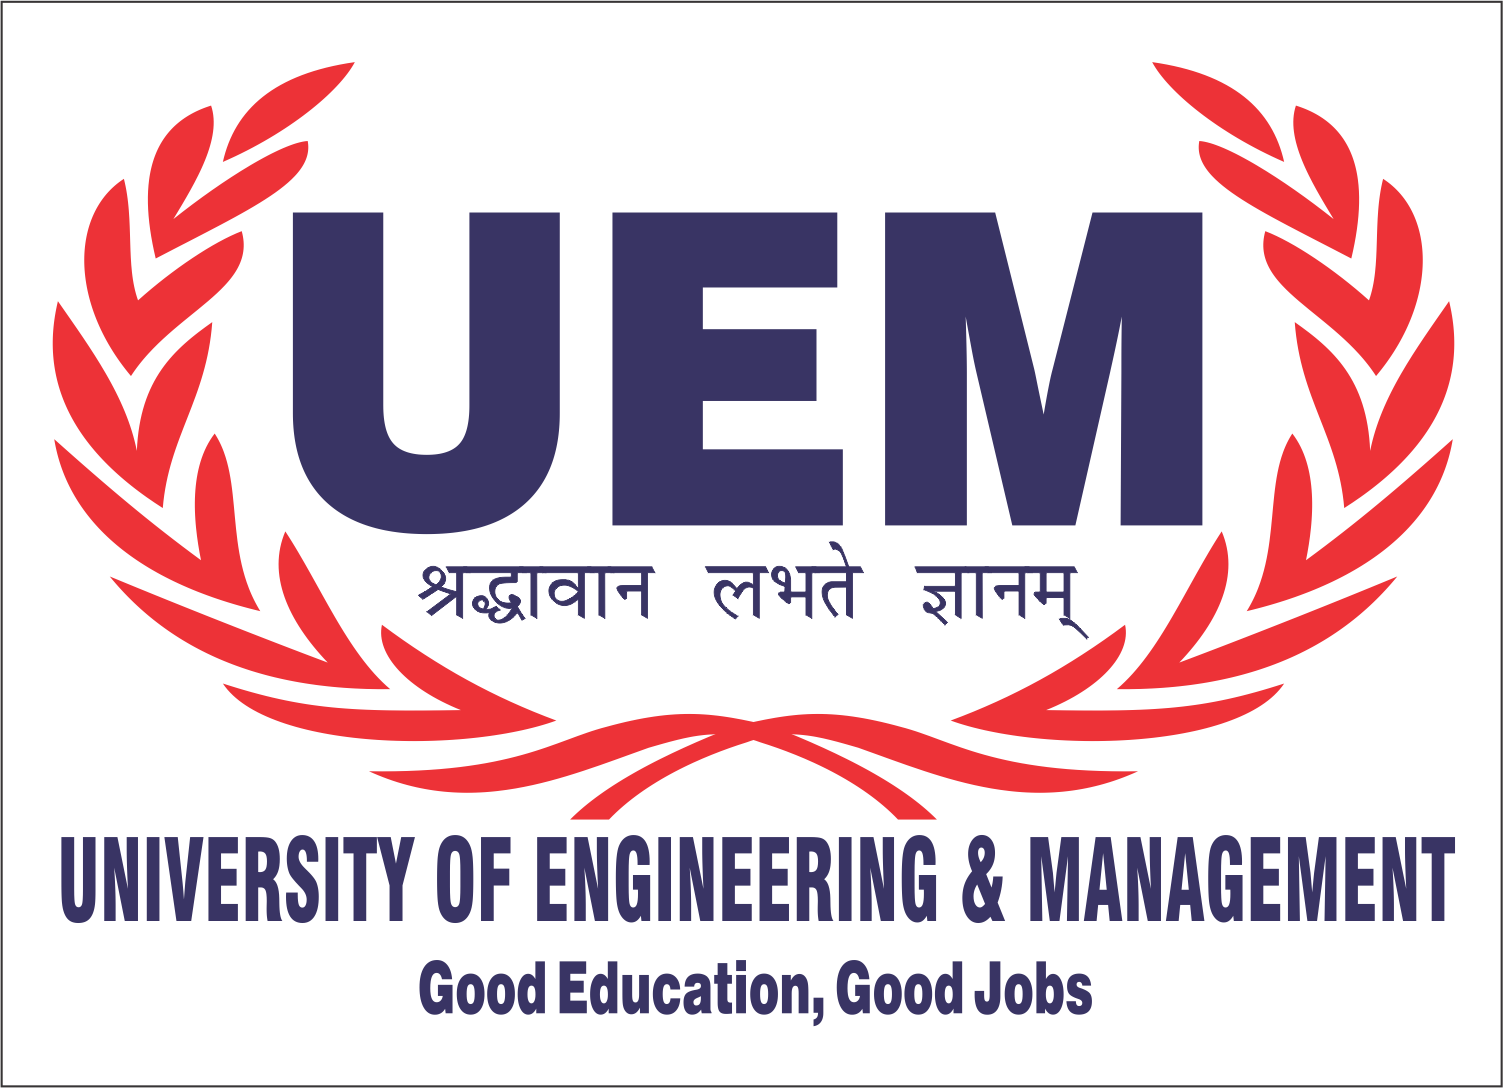 University of Engineering & Management Jaipur